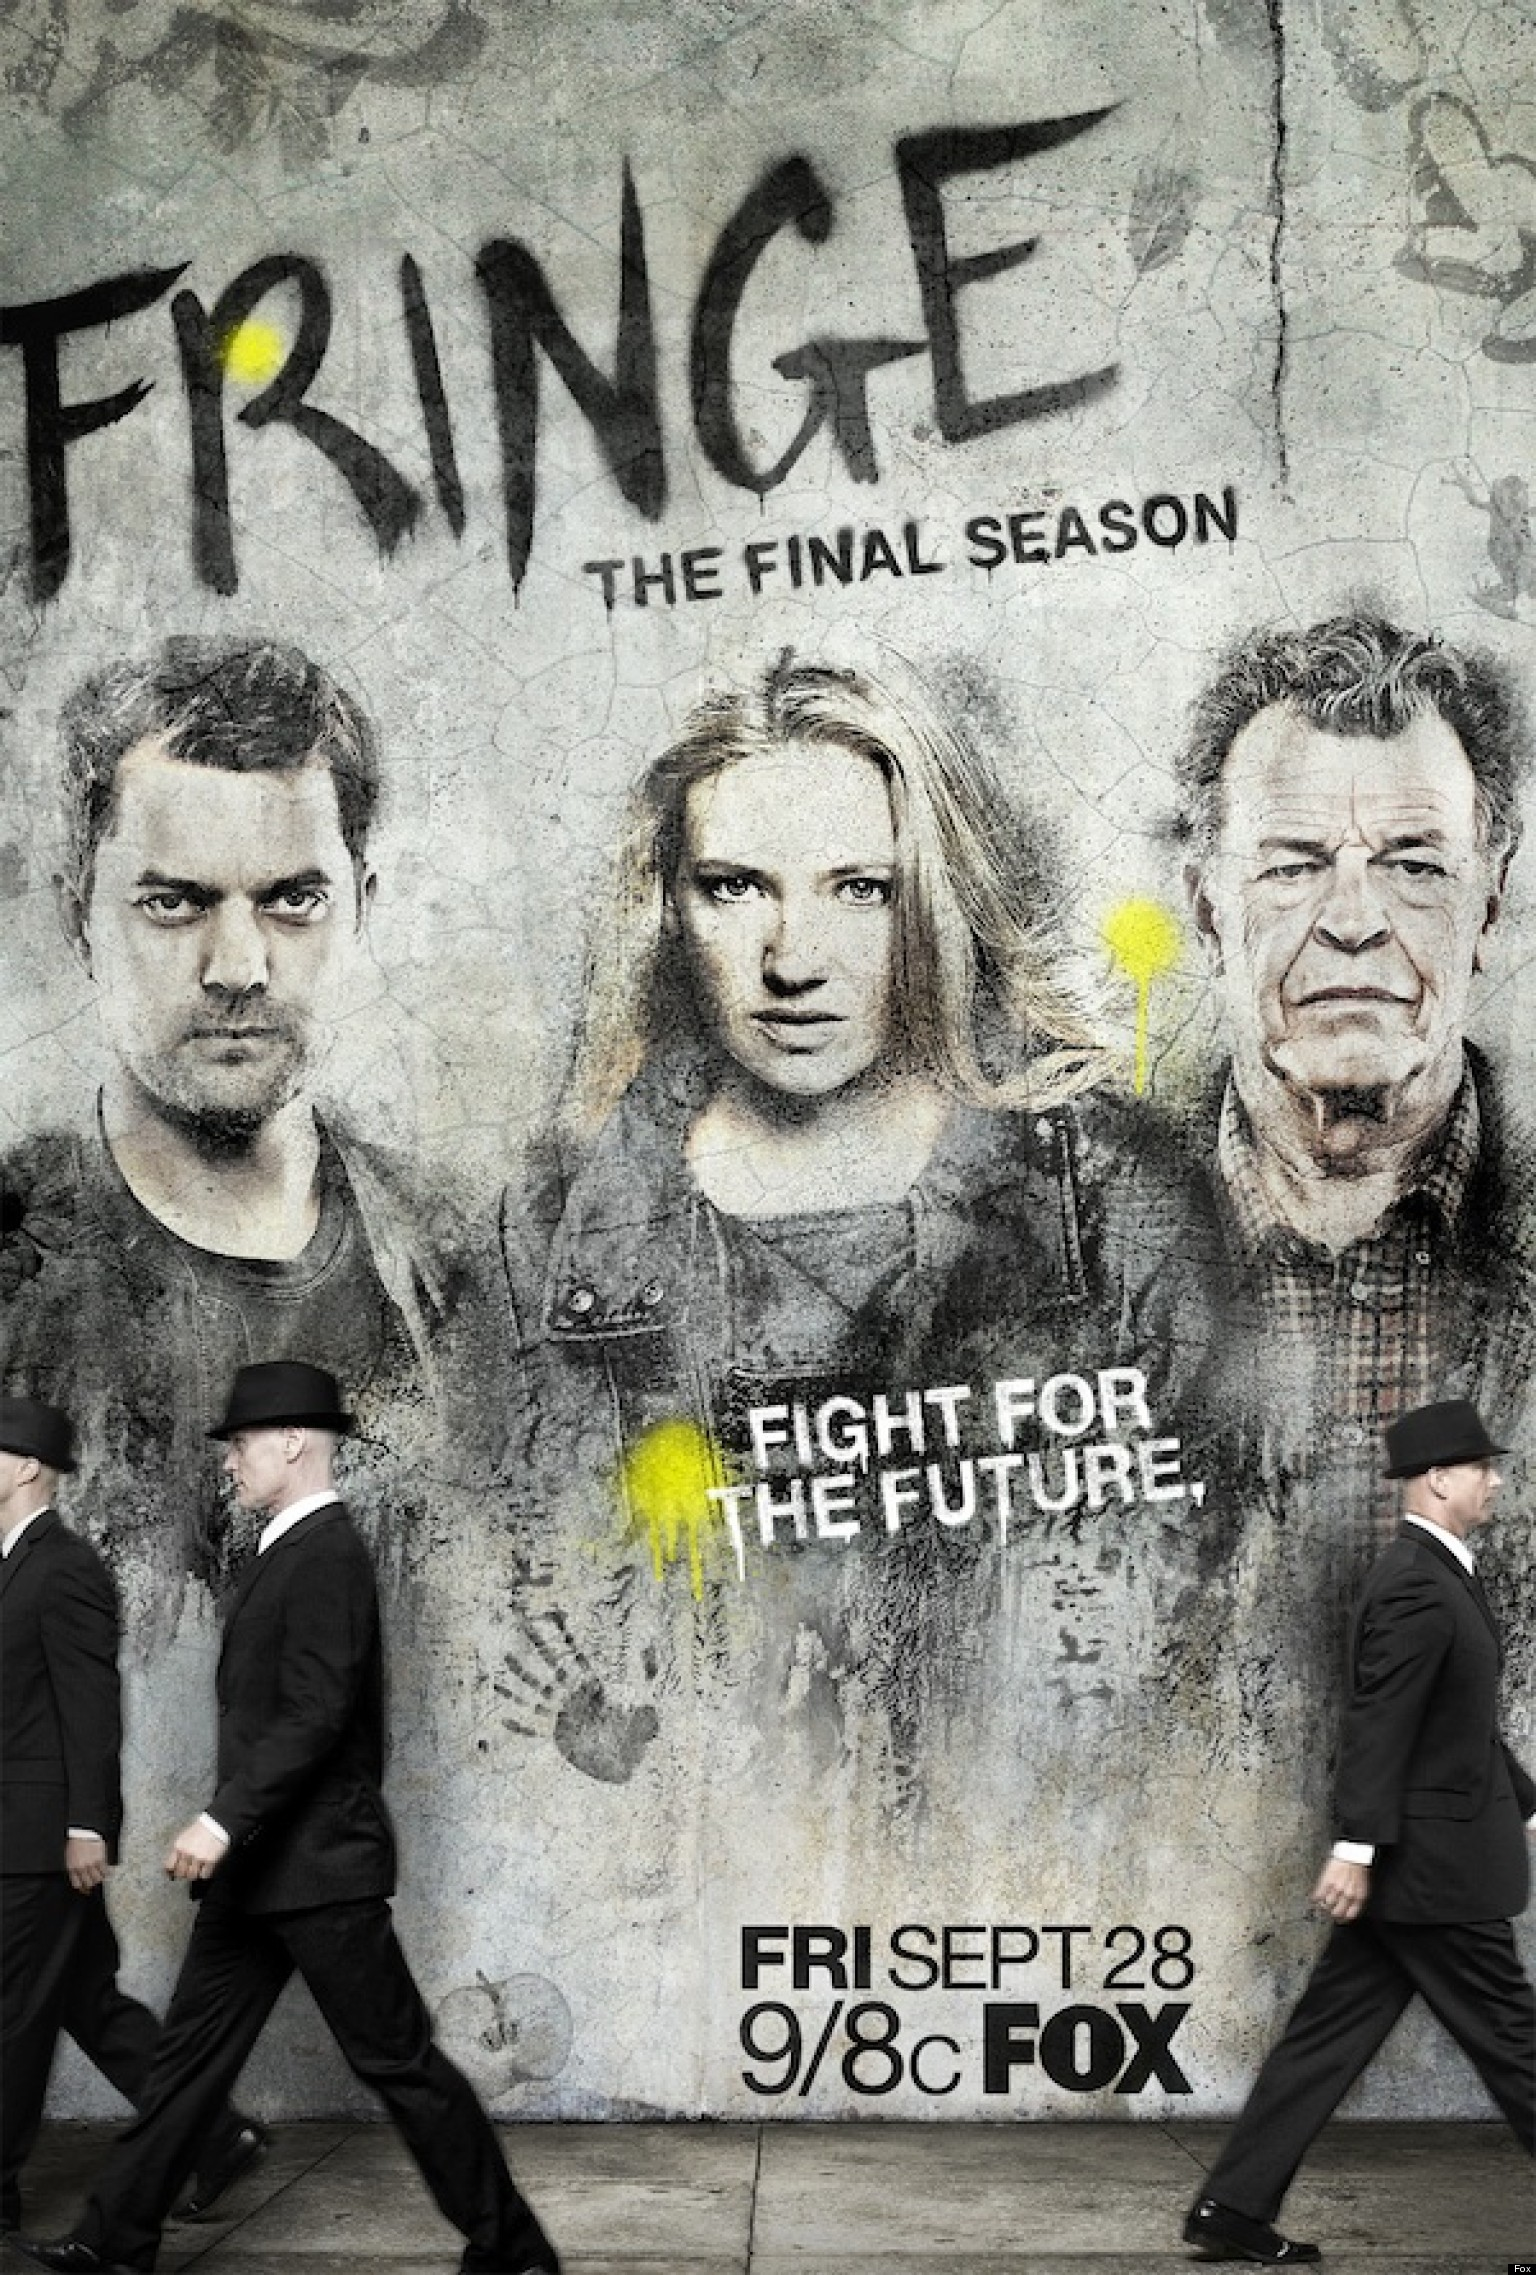 Five 5 Of Pentacles Tarot Card Meanings And Descriptions: 'Fringe' Season 5: Graffiti Poster Previews Rebellious